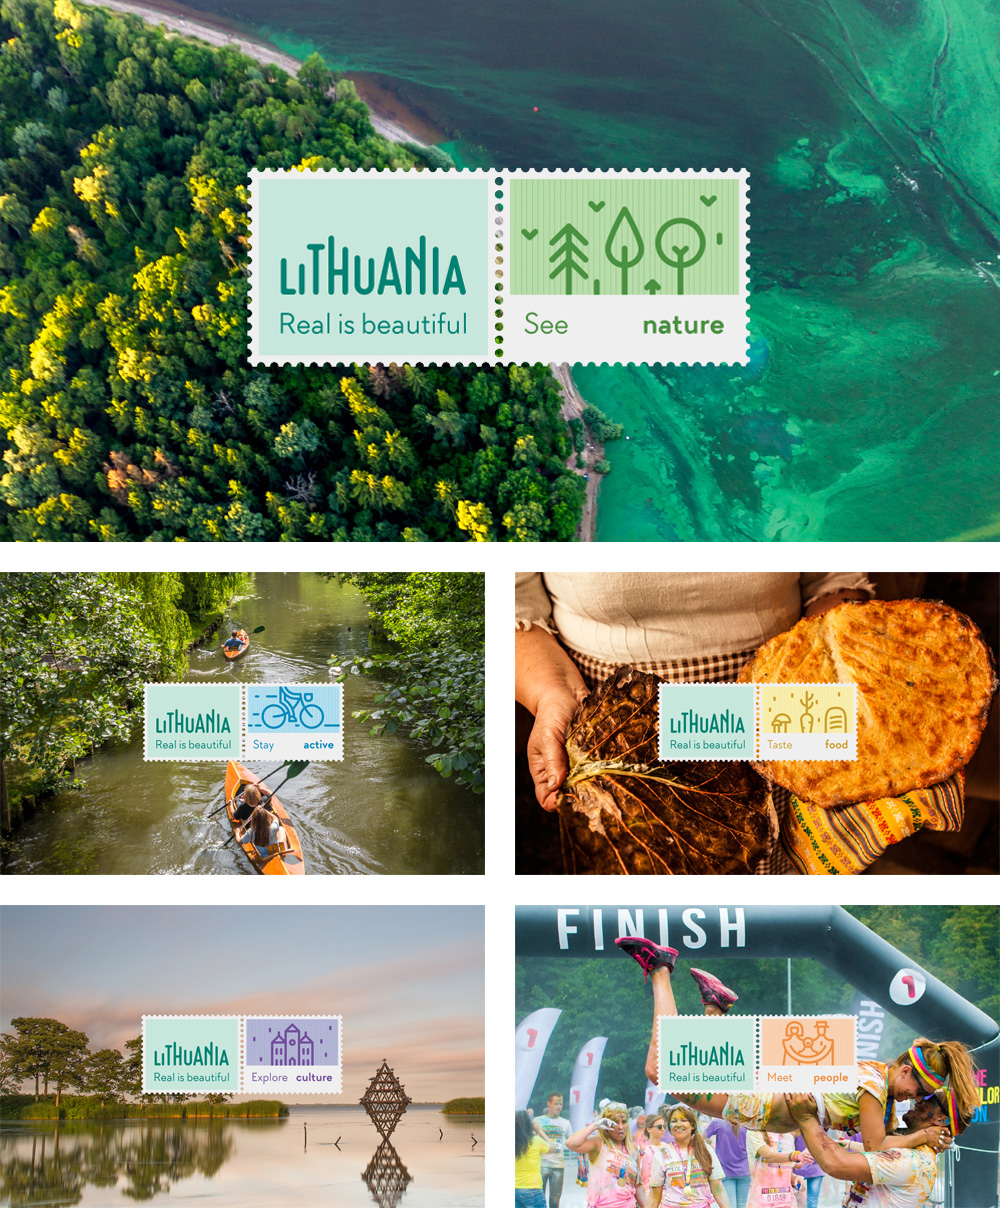 lithuania_stamps_photos